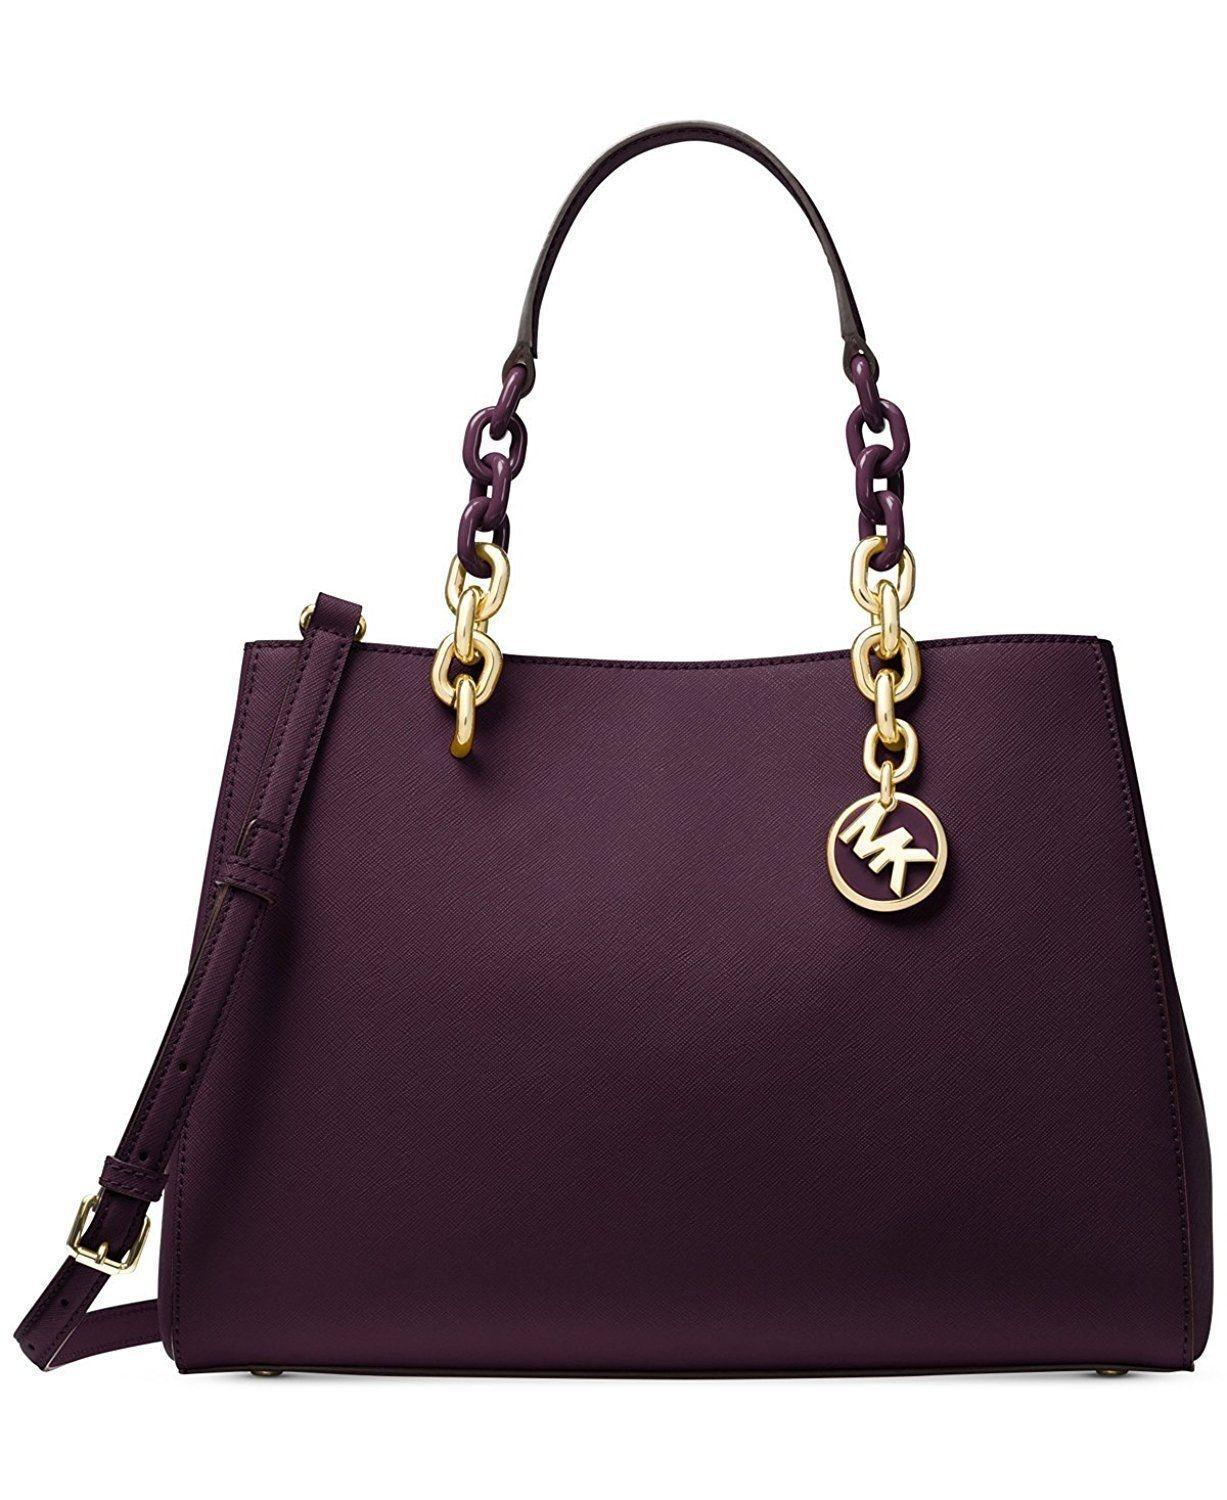 a8a570f0ed75 ... coupon code for michael michael kors medium cynthia saffiano leather  shoulder satchel in damsonpurple c71bc 5c97c ...